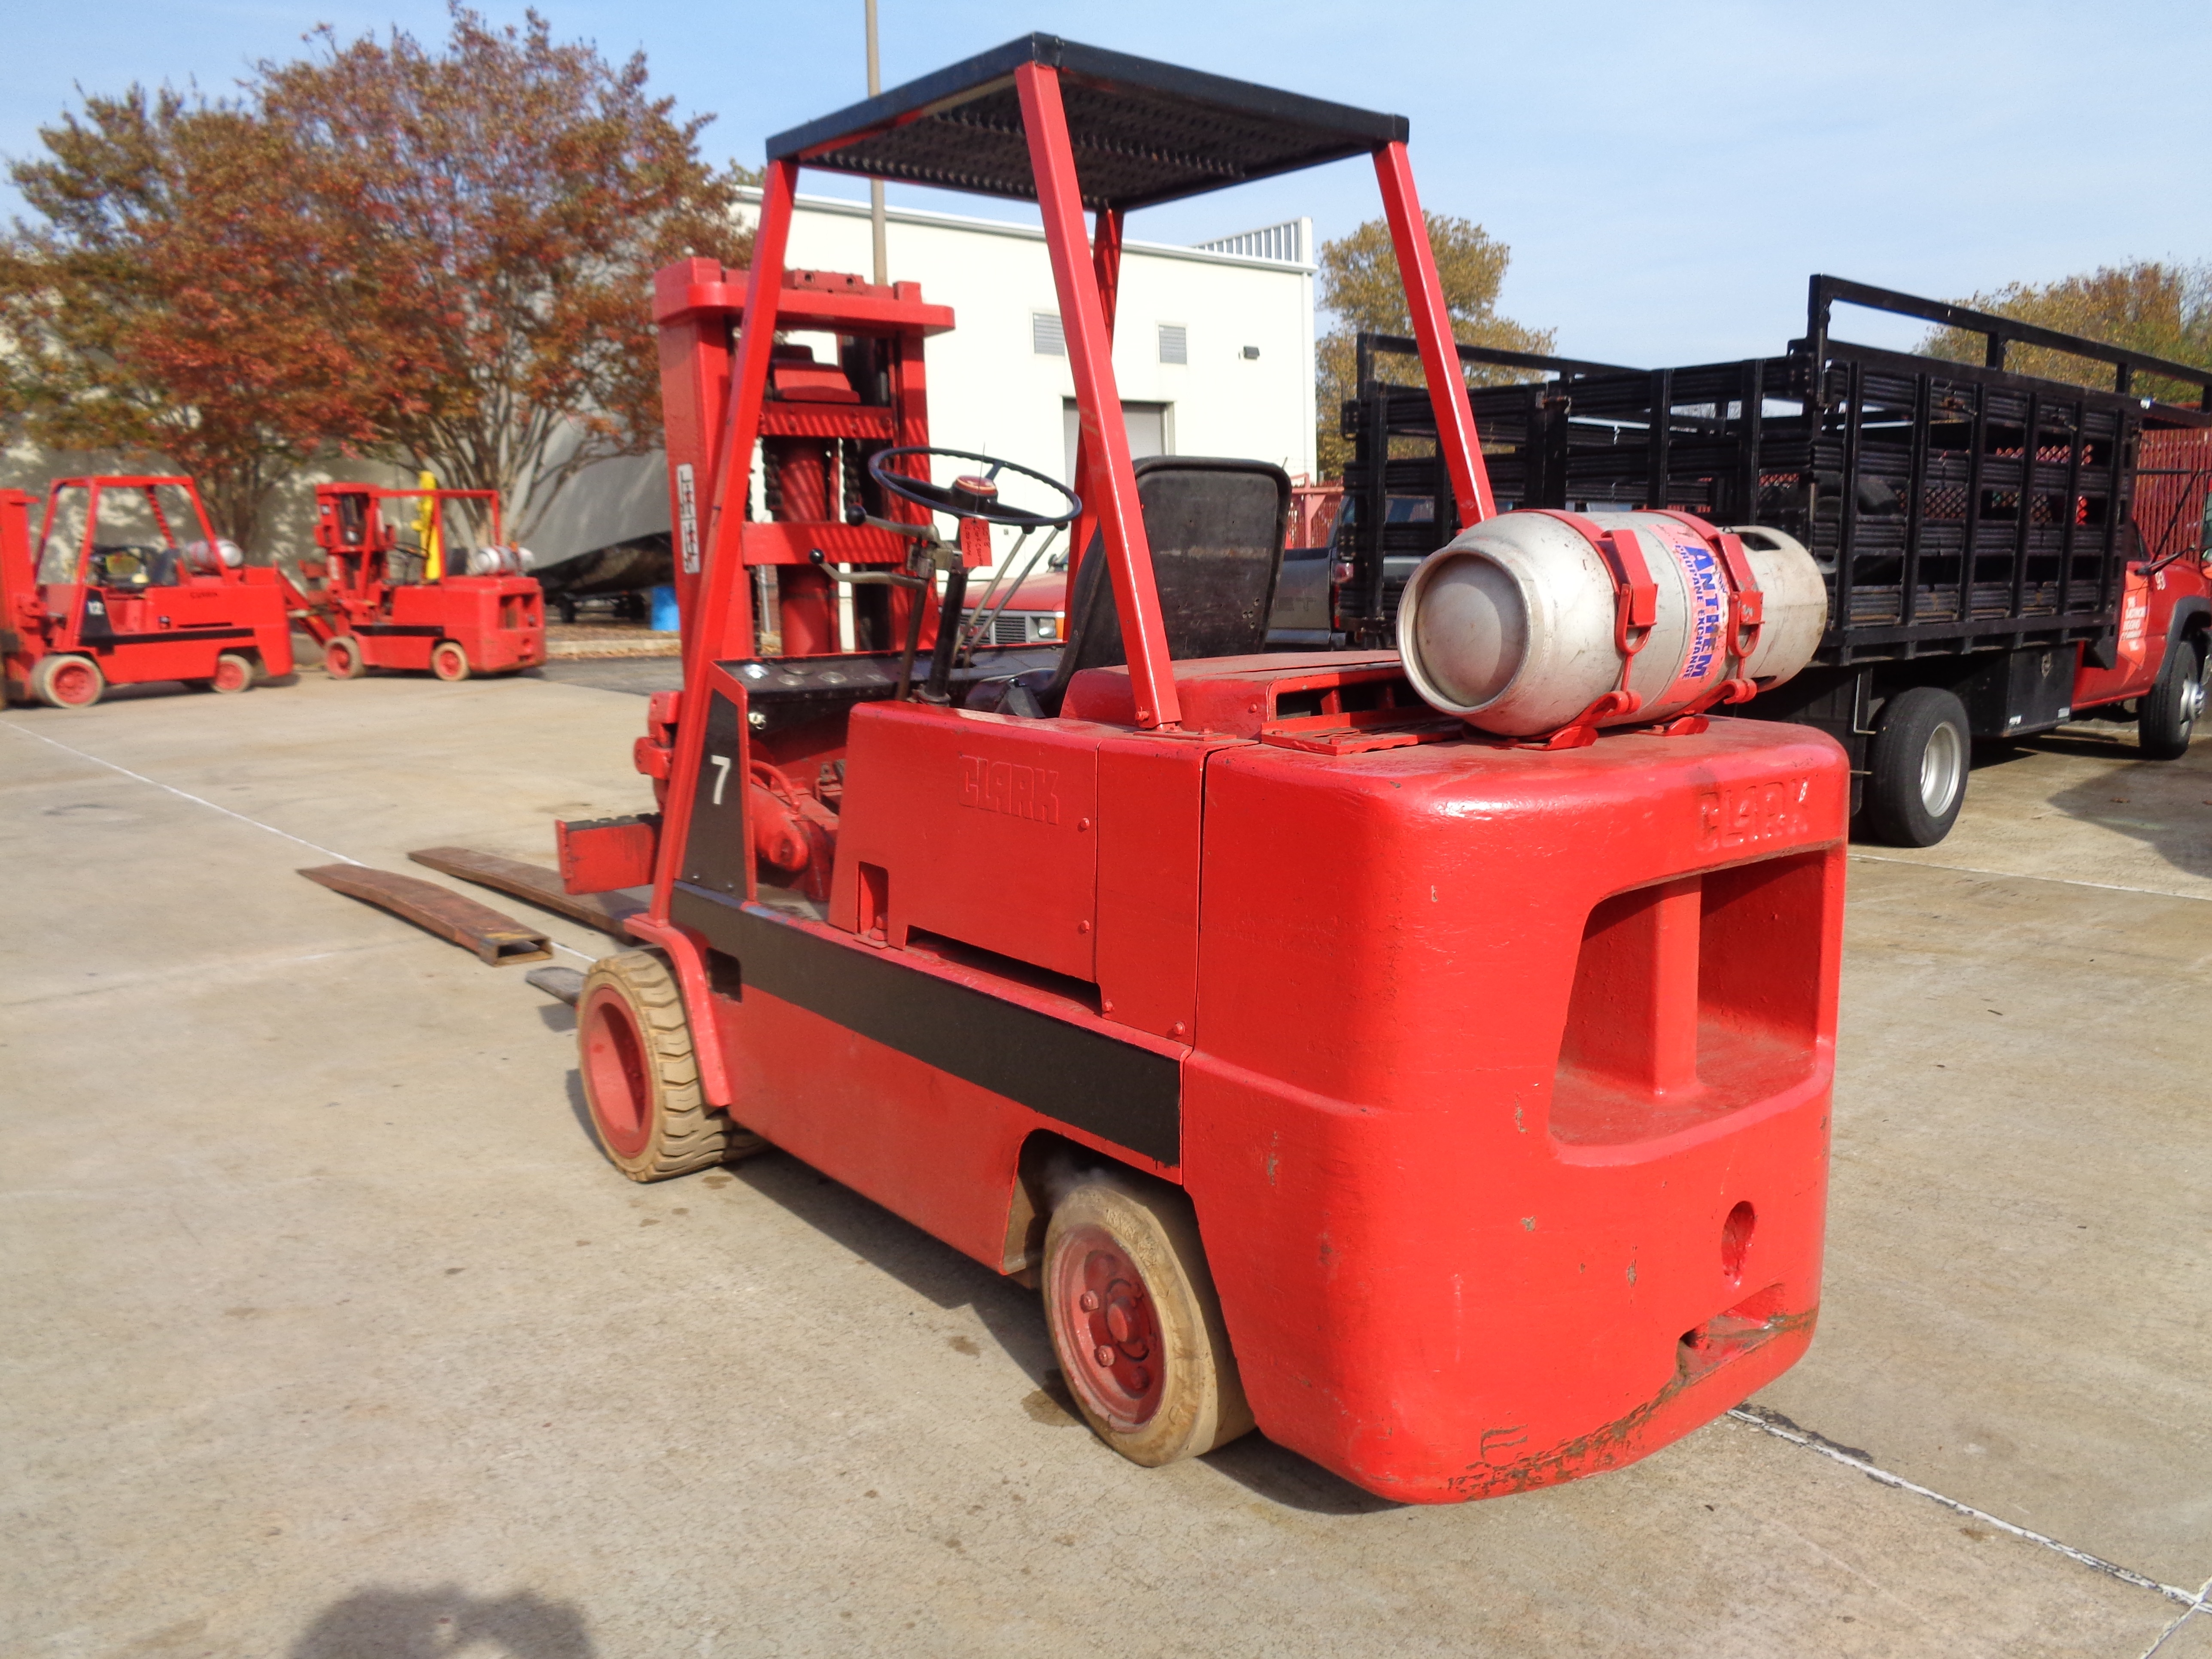 Clark C500-H120 Forklift- 12,000 lbs - Image 2 of 10